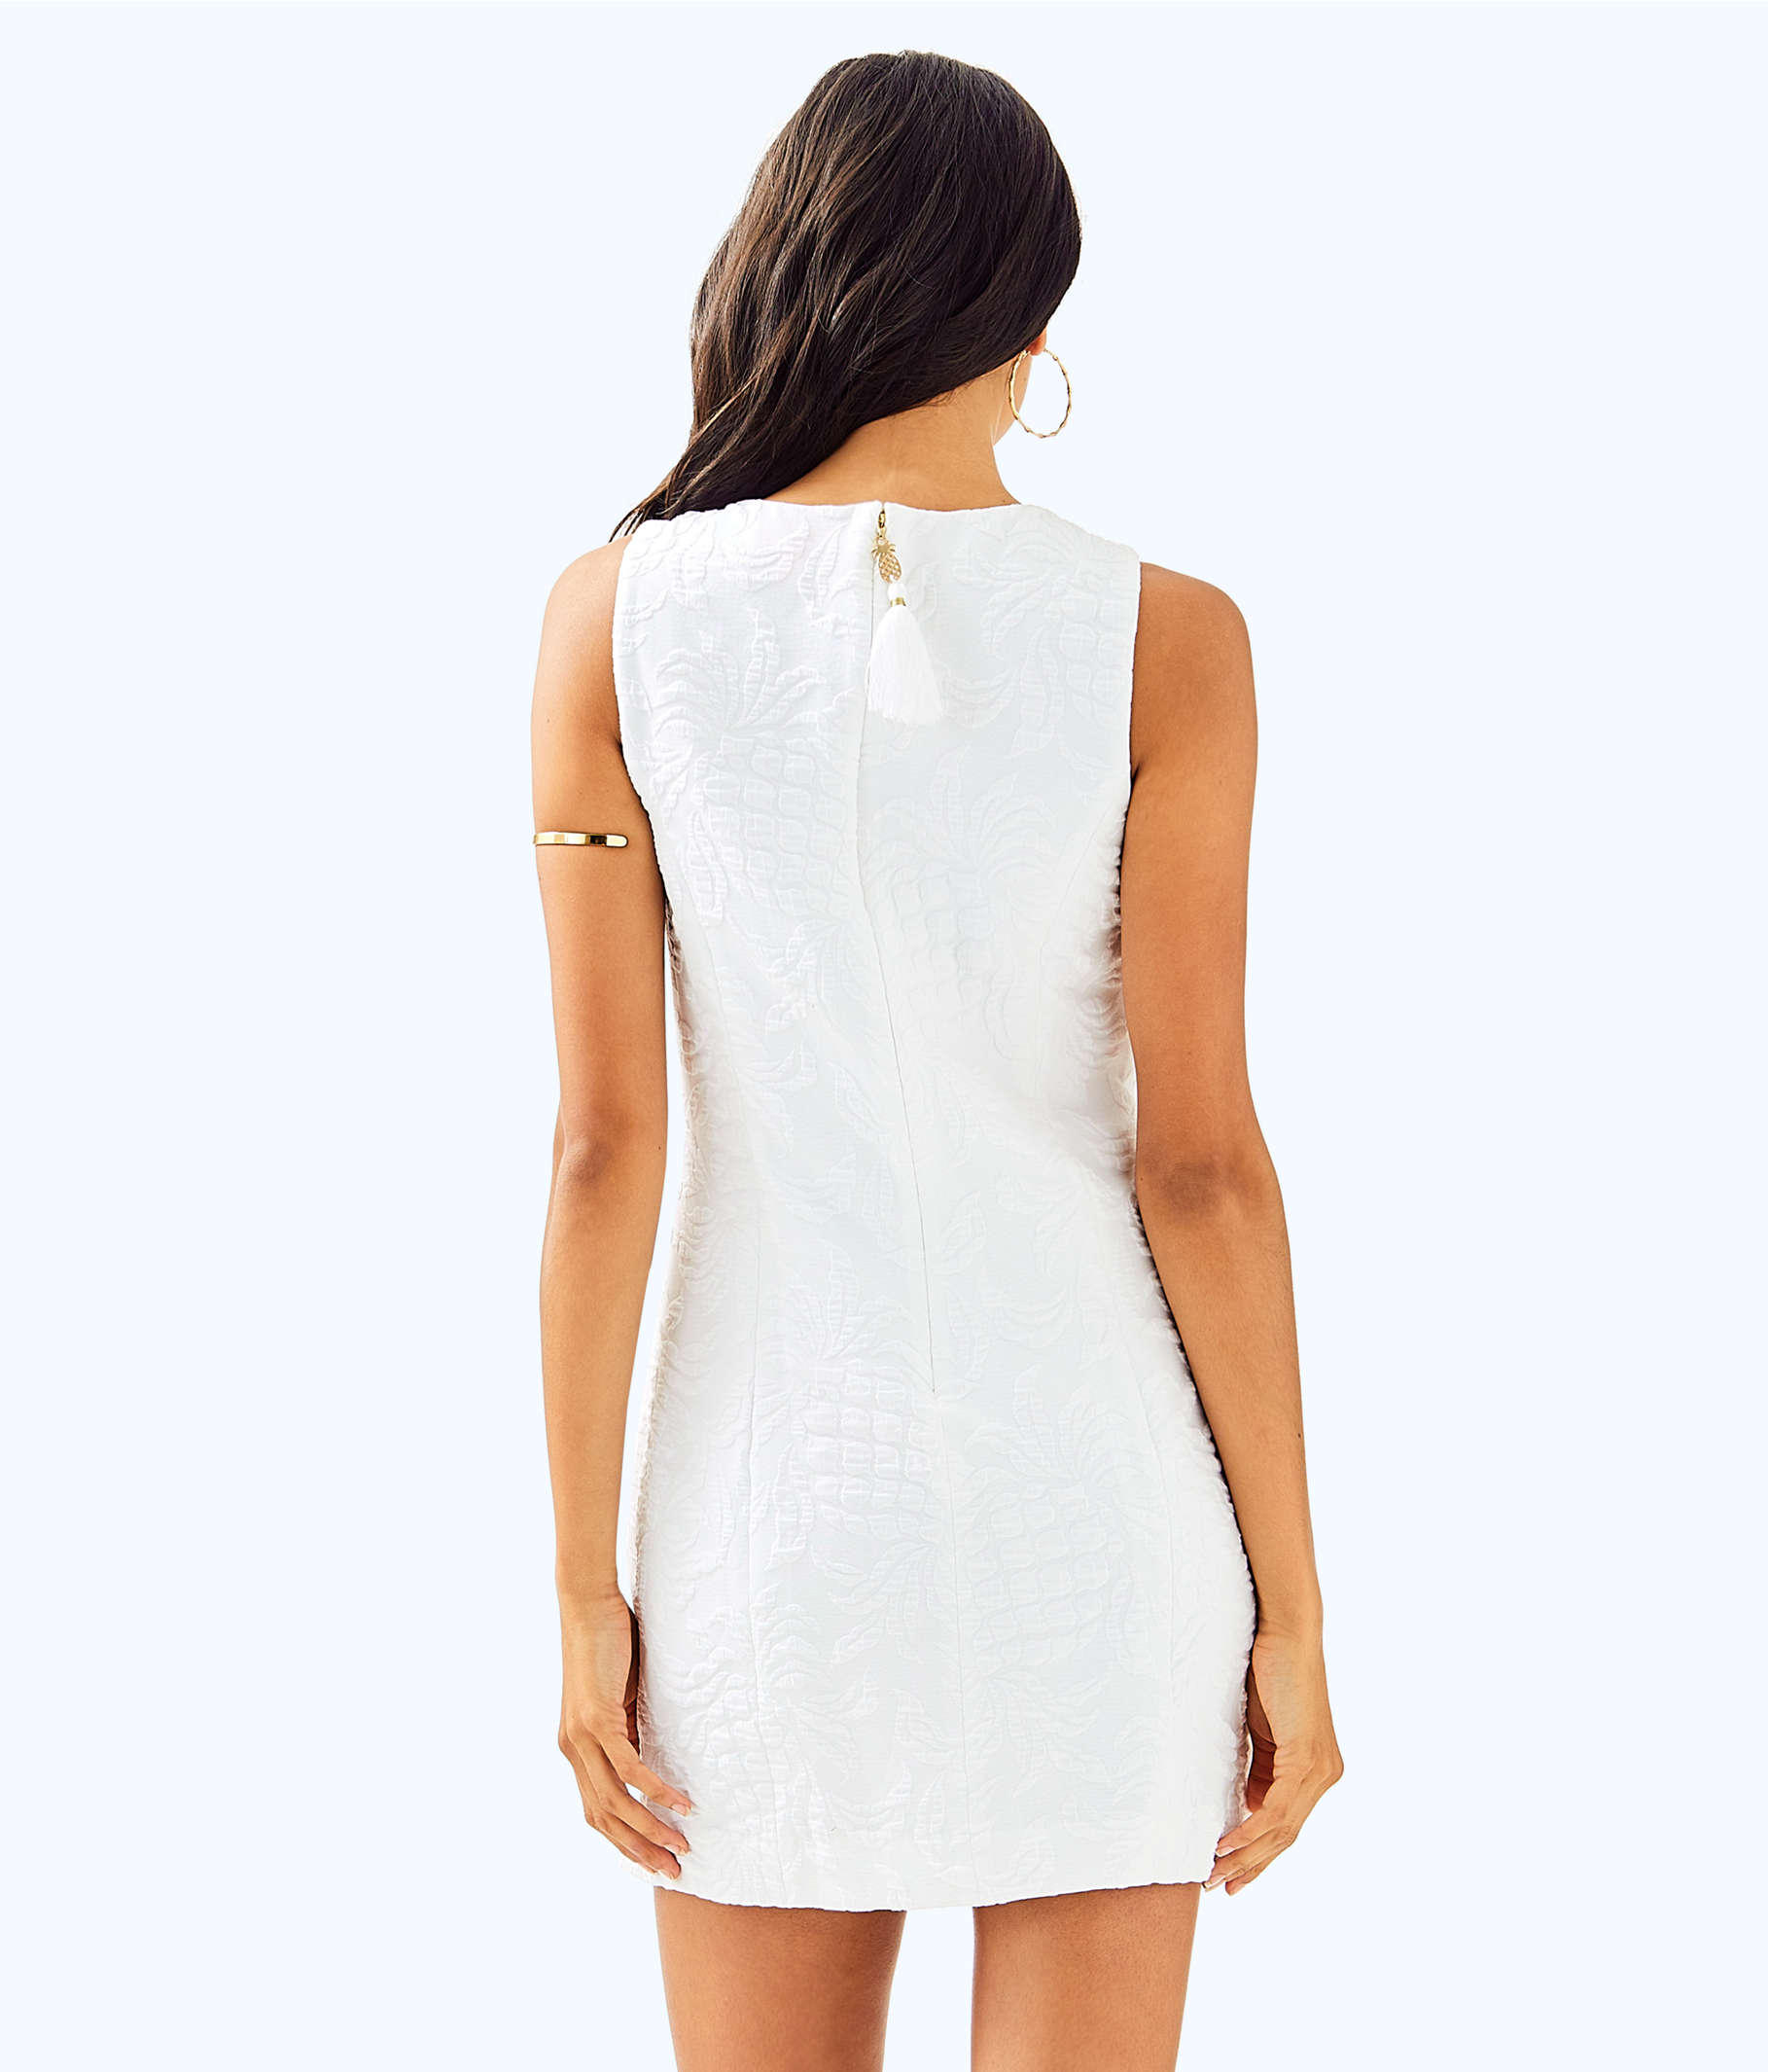 90d07a35ed0904 ... Keali Stretch Shift Dress, Resort White Pineapple Jacquard, large ...